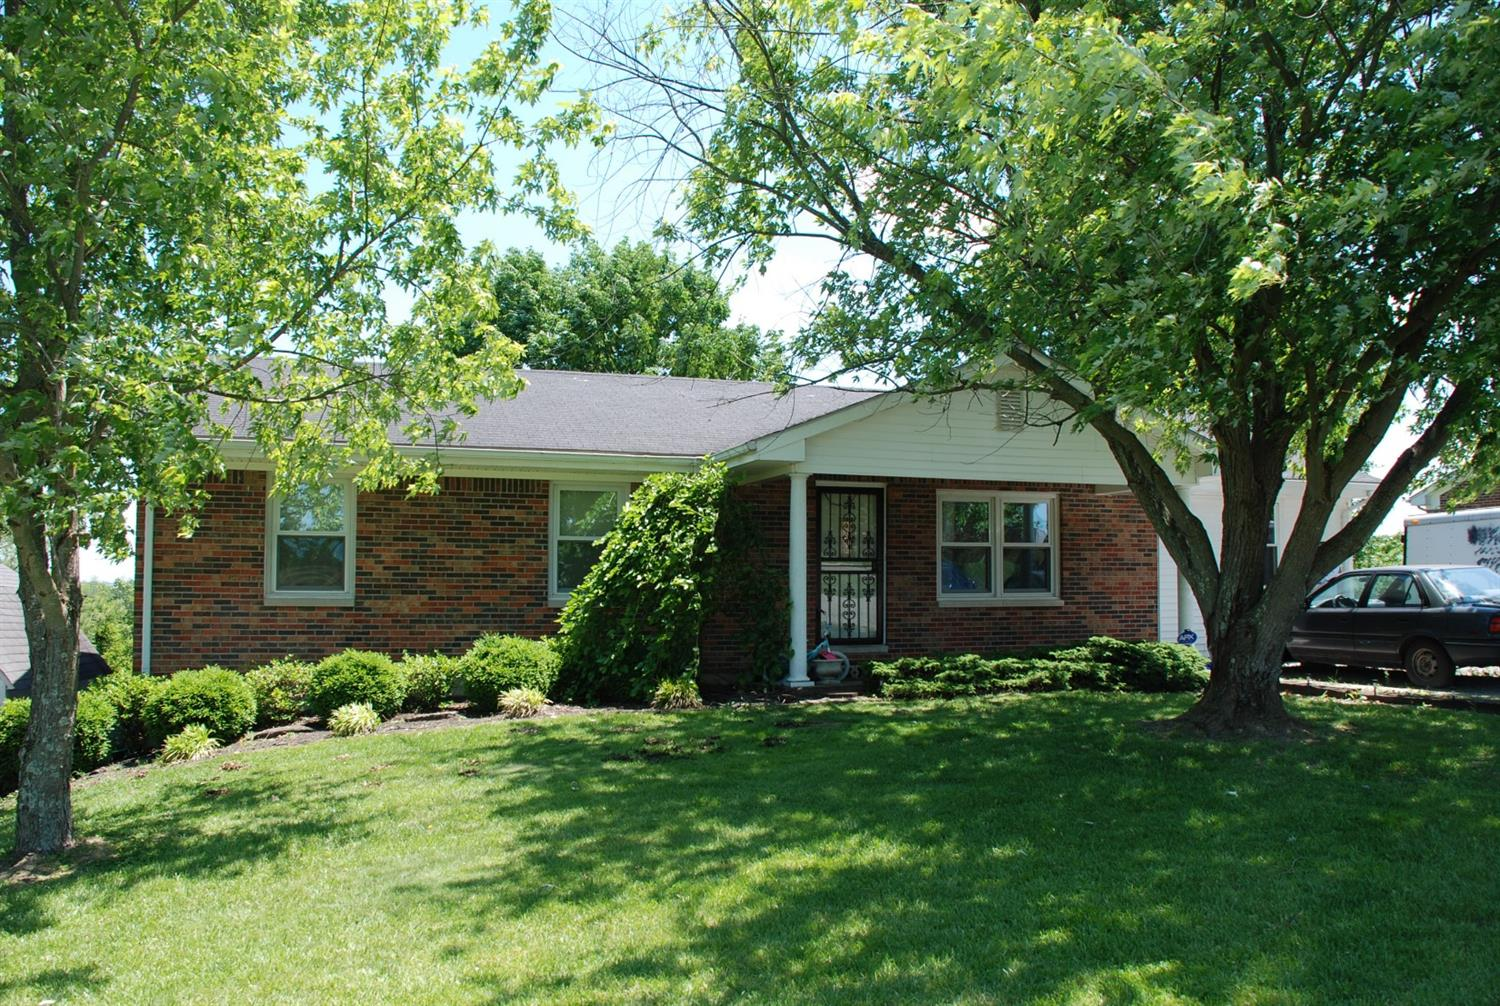 Just%2010%20minutes%20from%20downtown%20Harrodsburg.%204%20Bedroom%20ranch%20on%20an%20unfinished%20basement.%20Nice%20scenic%20views.